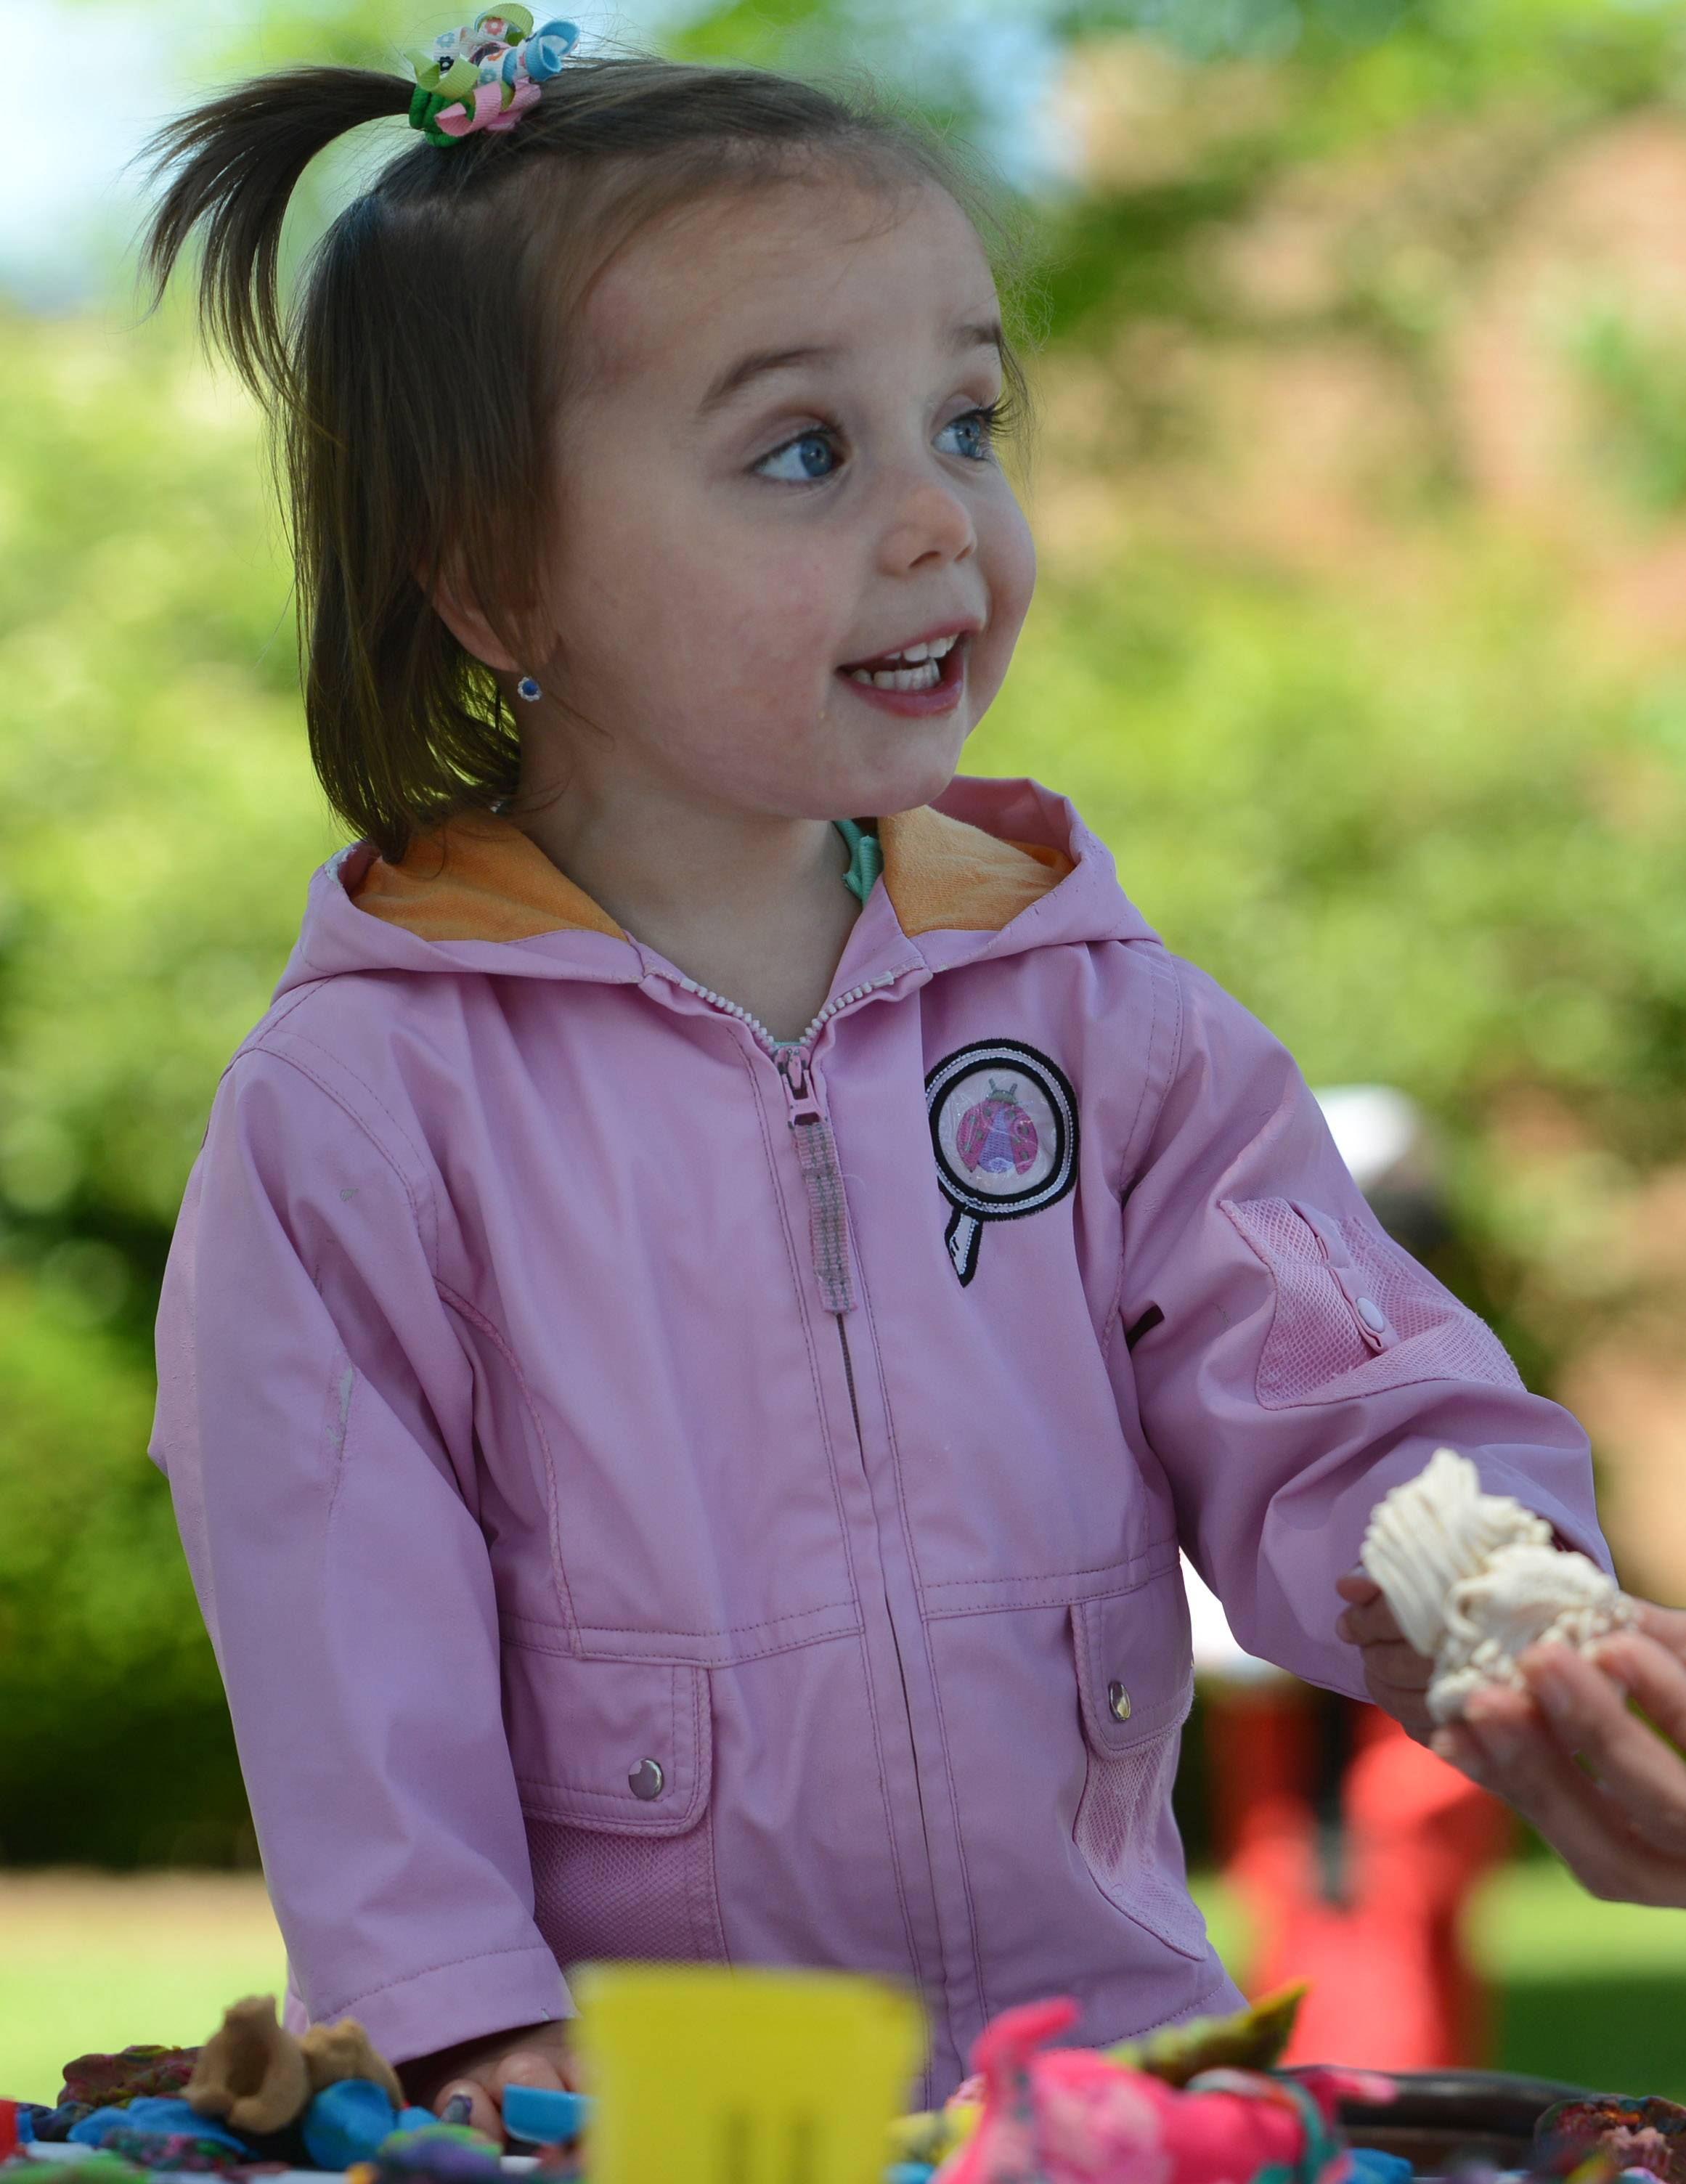 Vicky Gracias, 2, of Libertyville plays at one of the activity tables Friday morning.